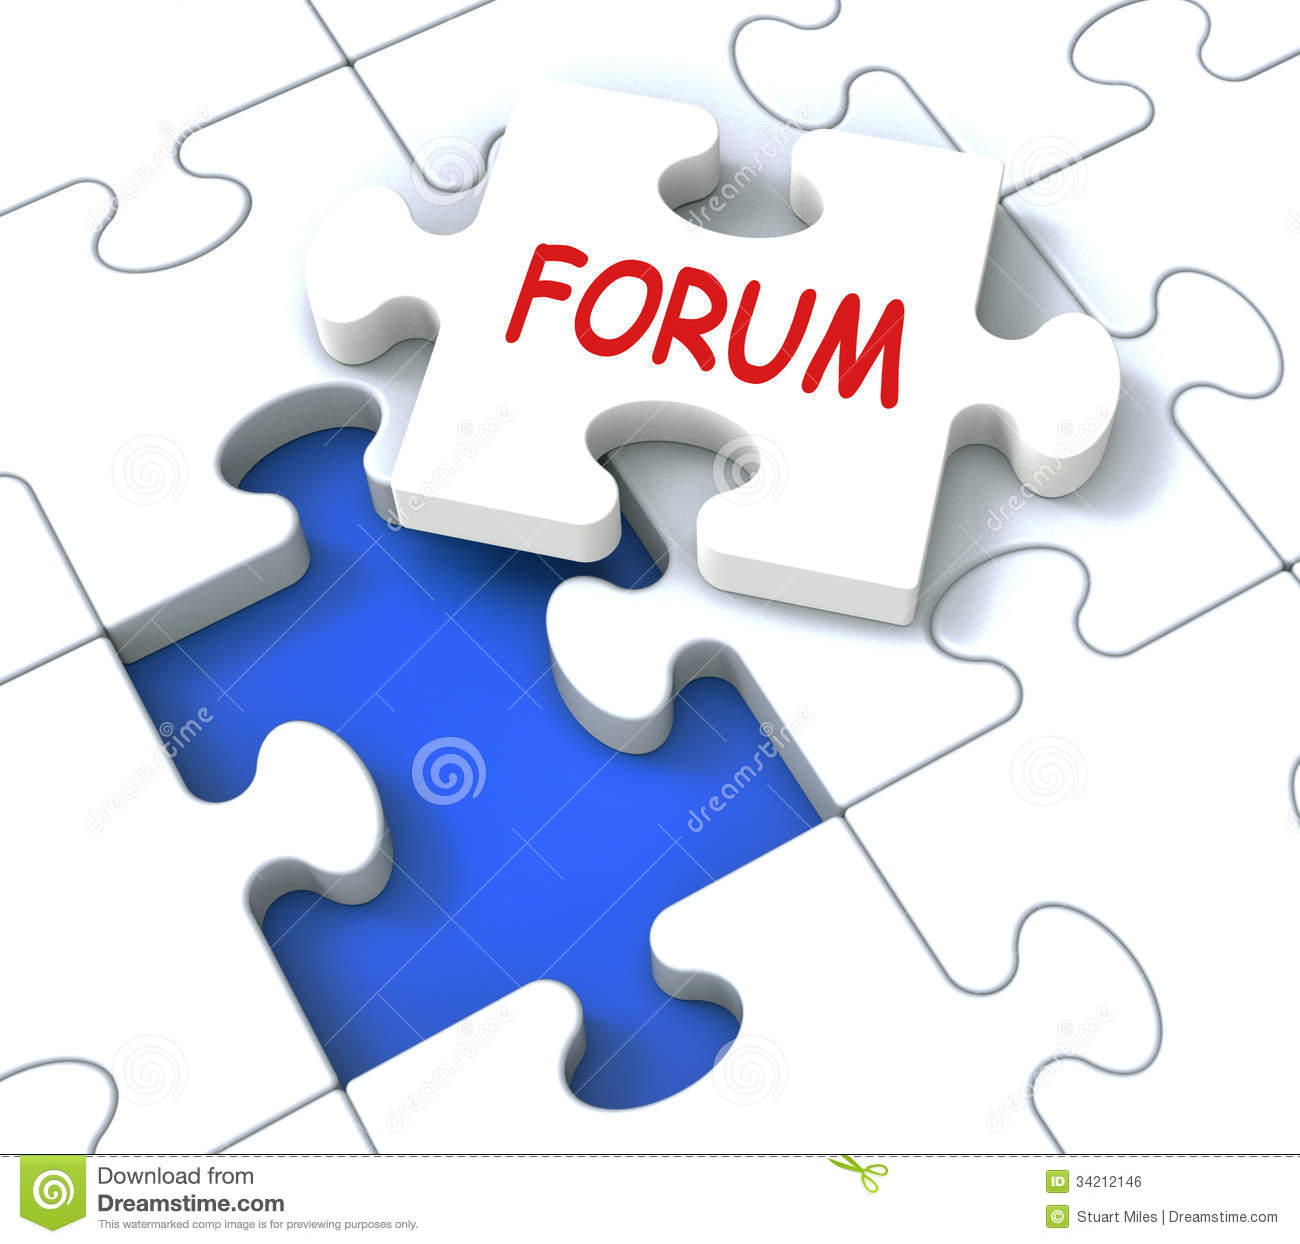 forum puzzle shows online community discussion and advice royalty